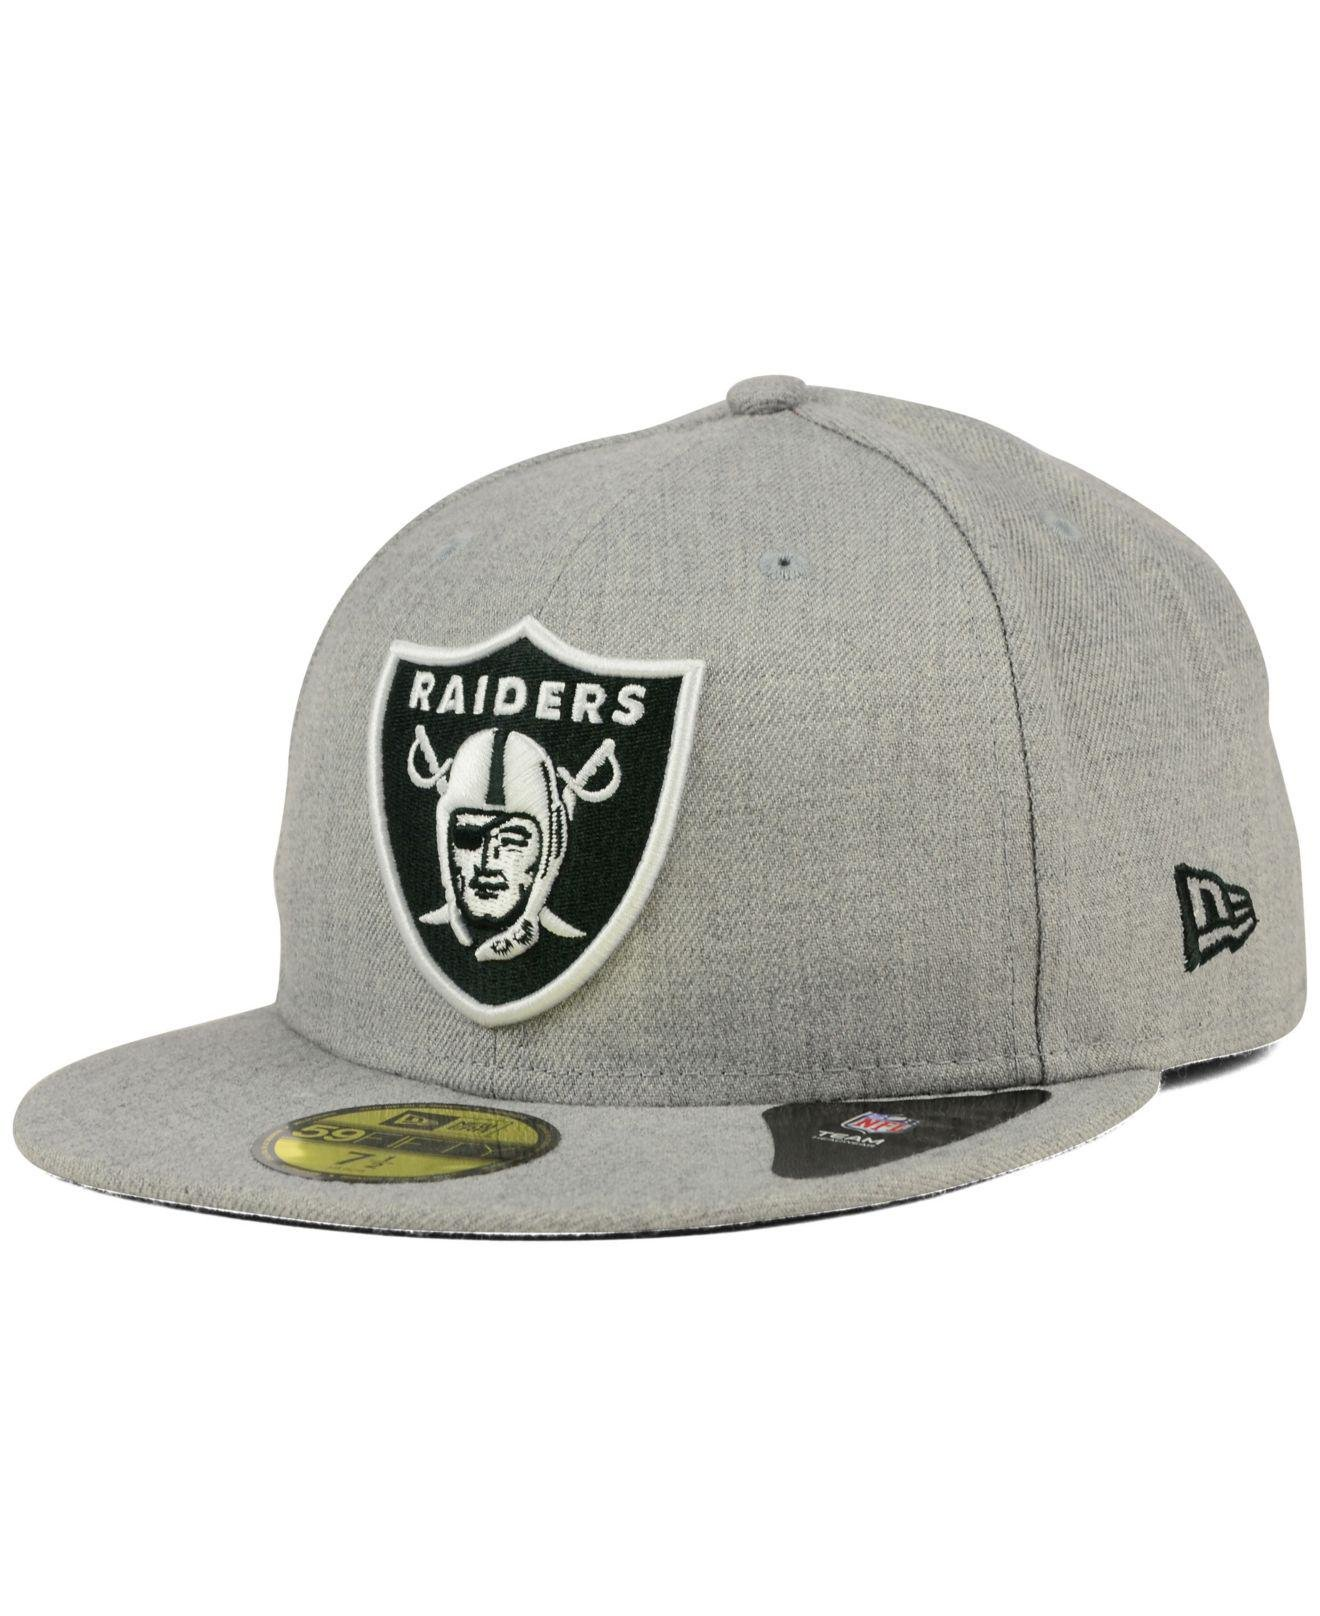 Lyst - KTZ Oakland Raiders Heather Black White 59fifty Cap in Gray ... 6115d3fa77df